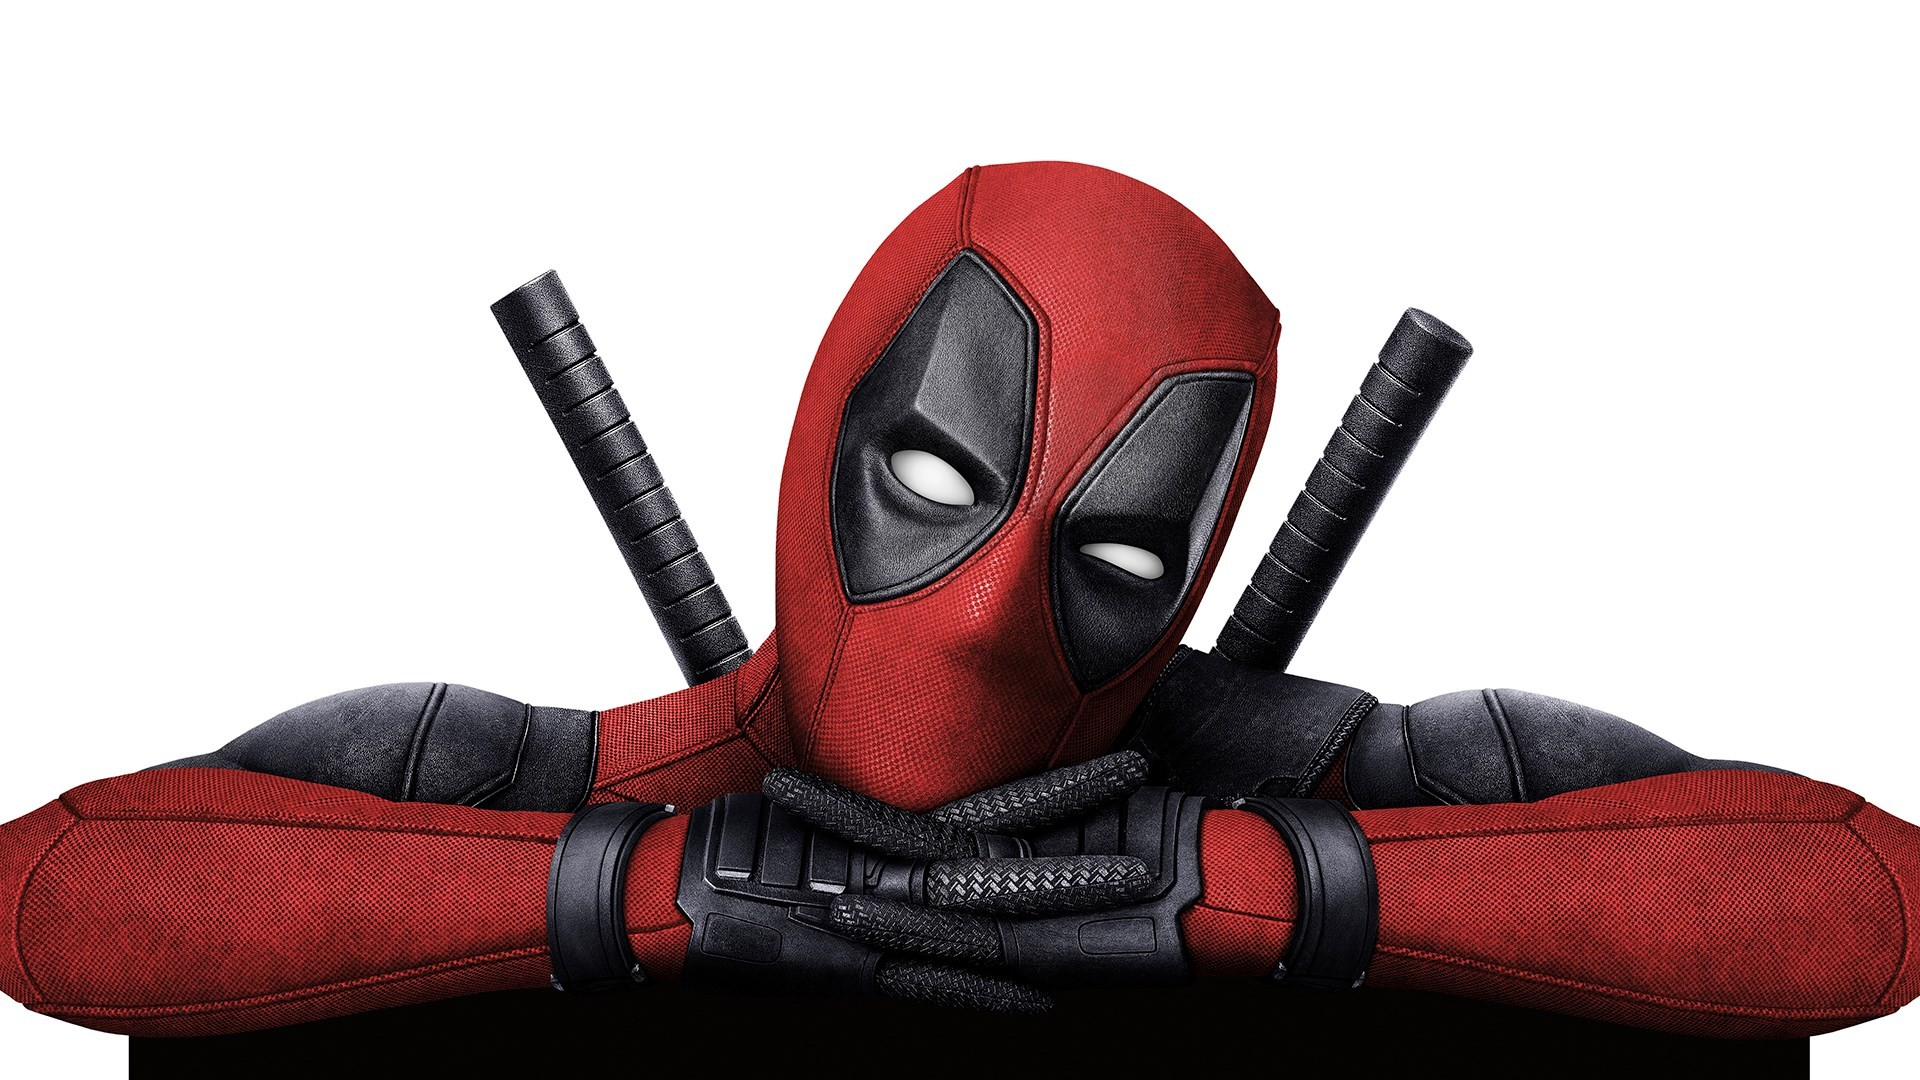 Deadpool hd desktop wallpaper 75 images for Deadpool wallpaper 1920x1080